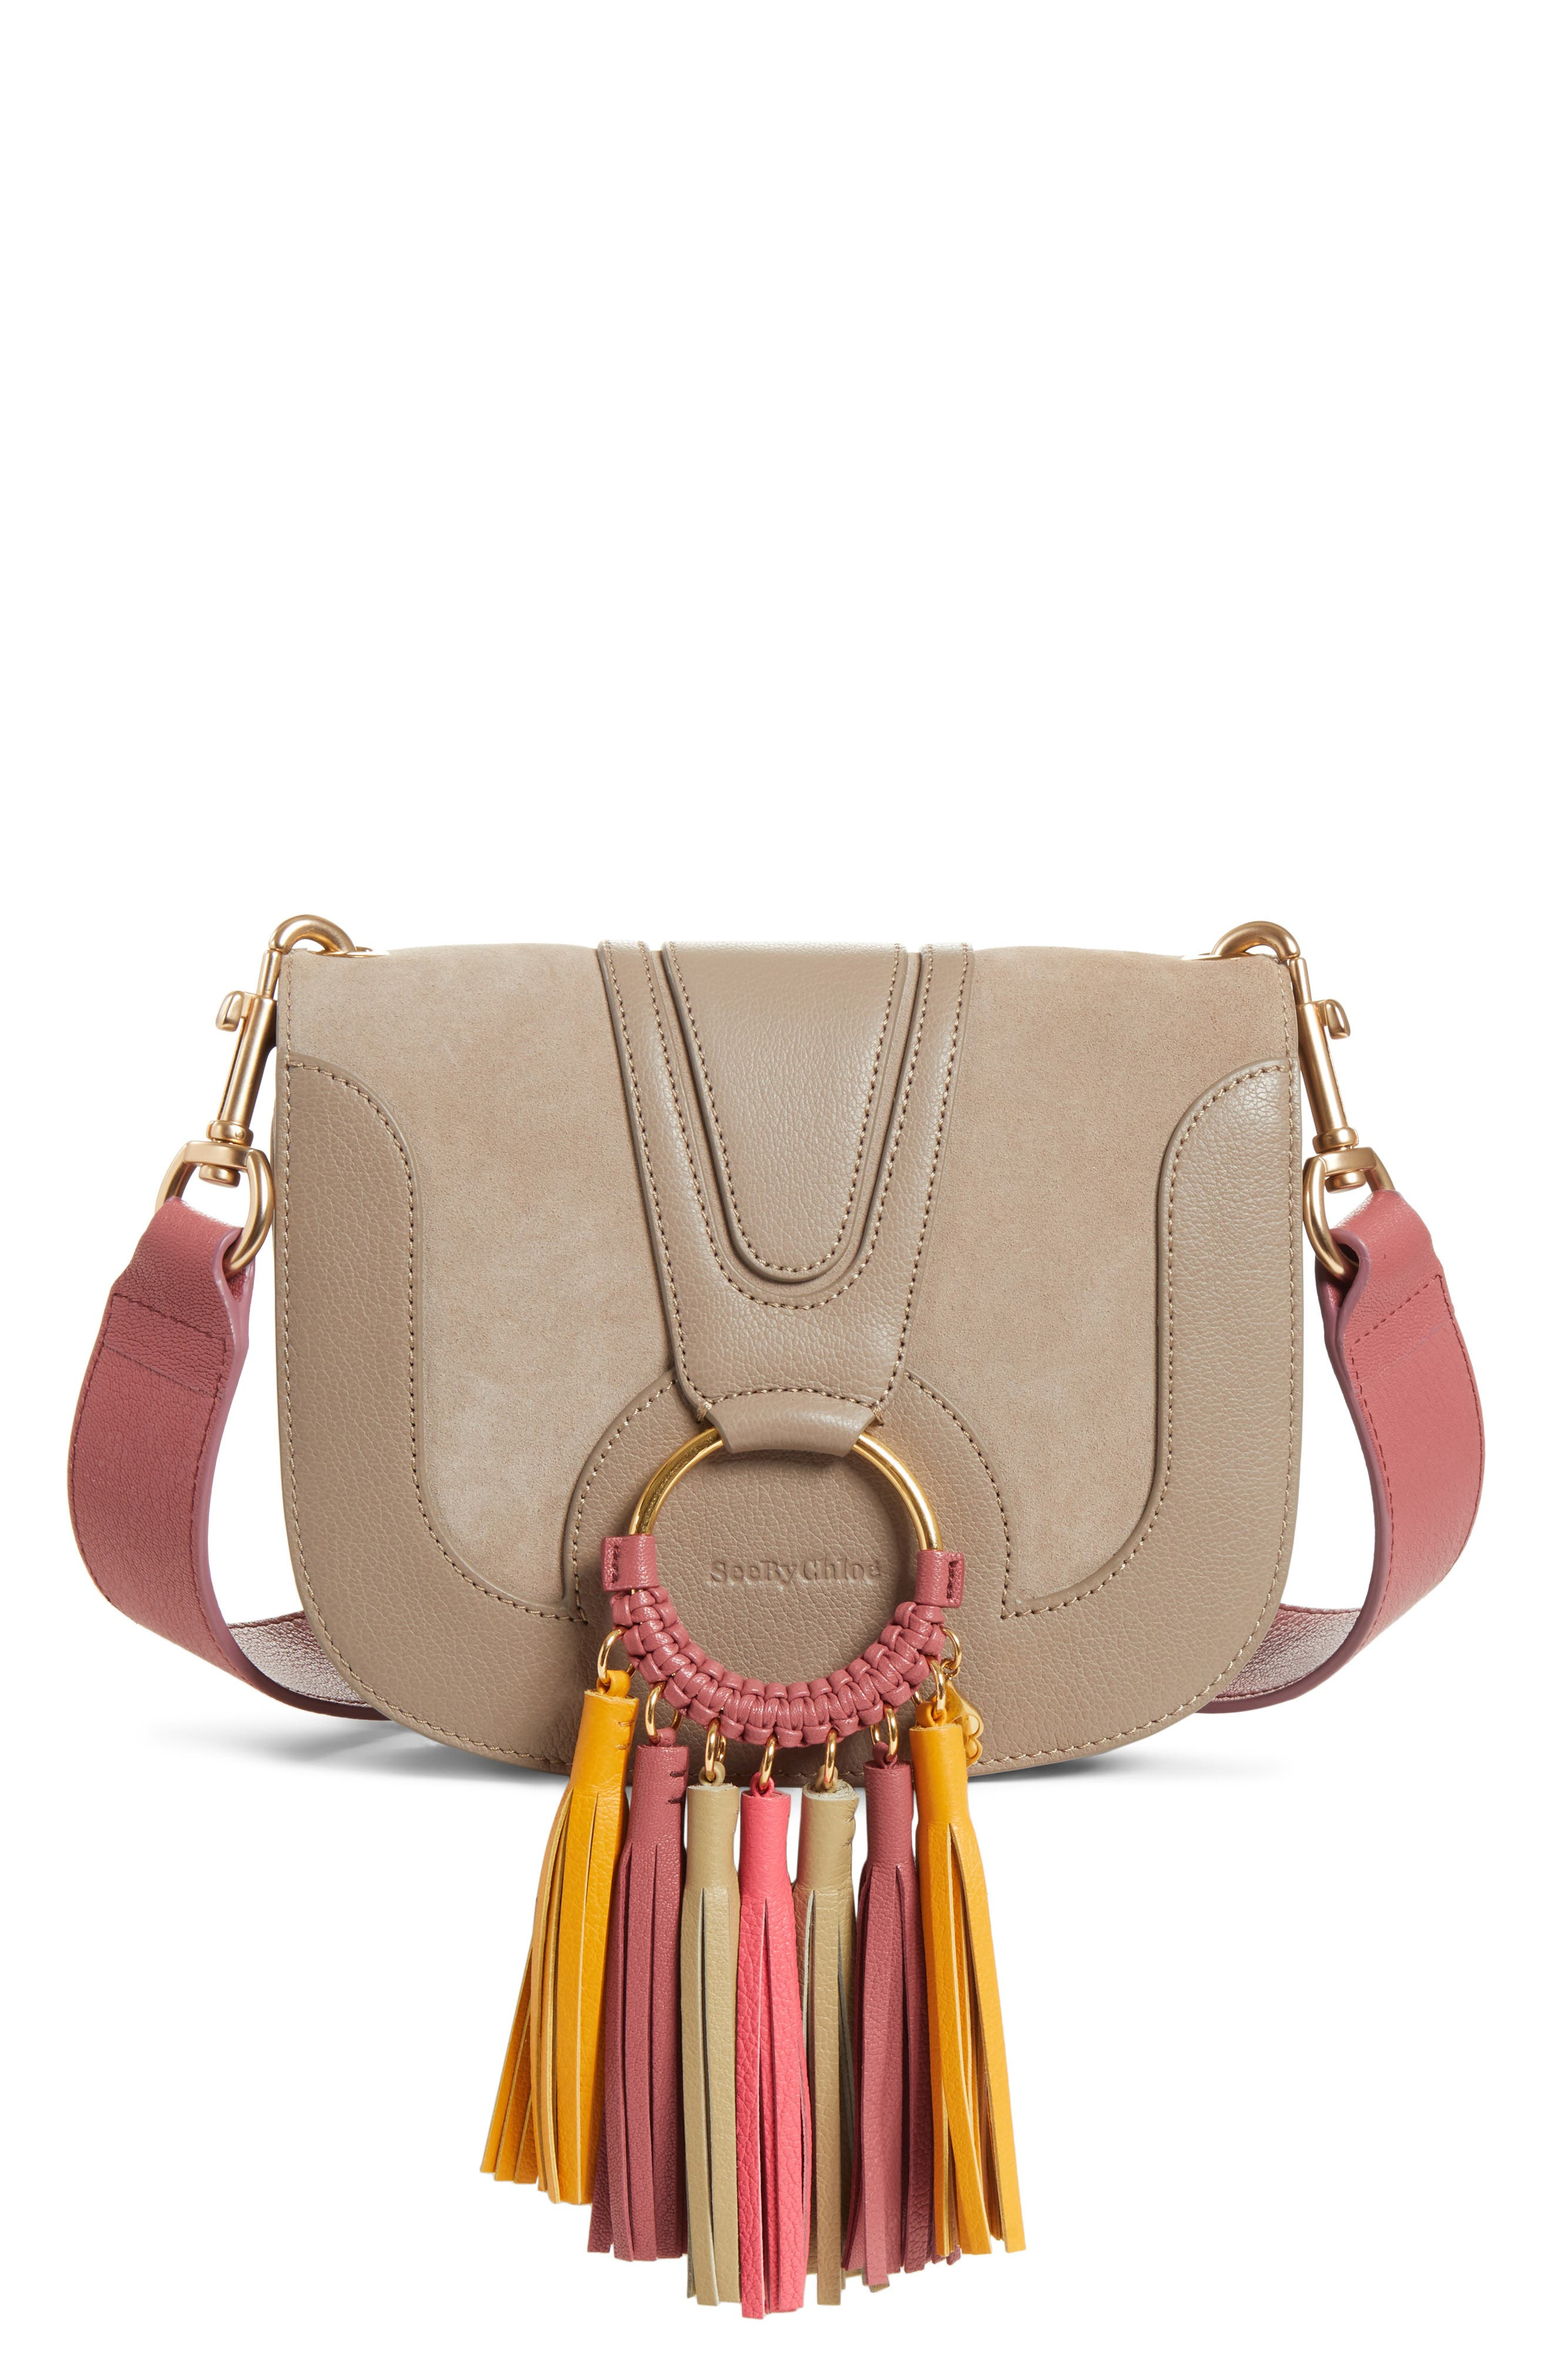 Hana Leather Shoulder Bag,                             Main thumbnail 1, color,                             020